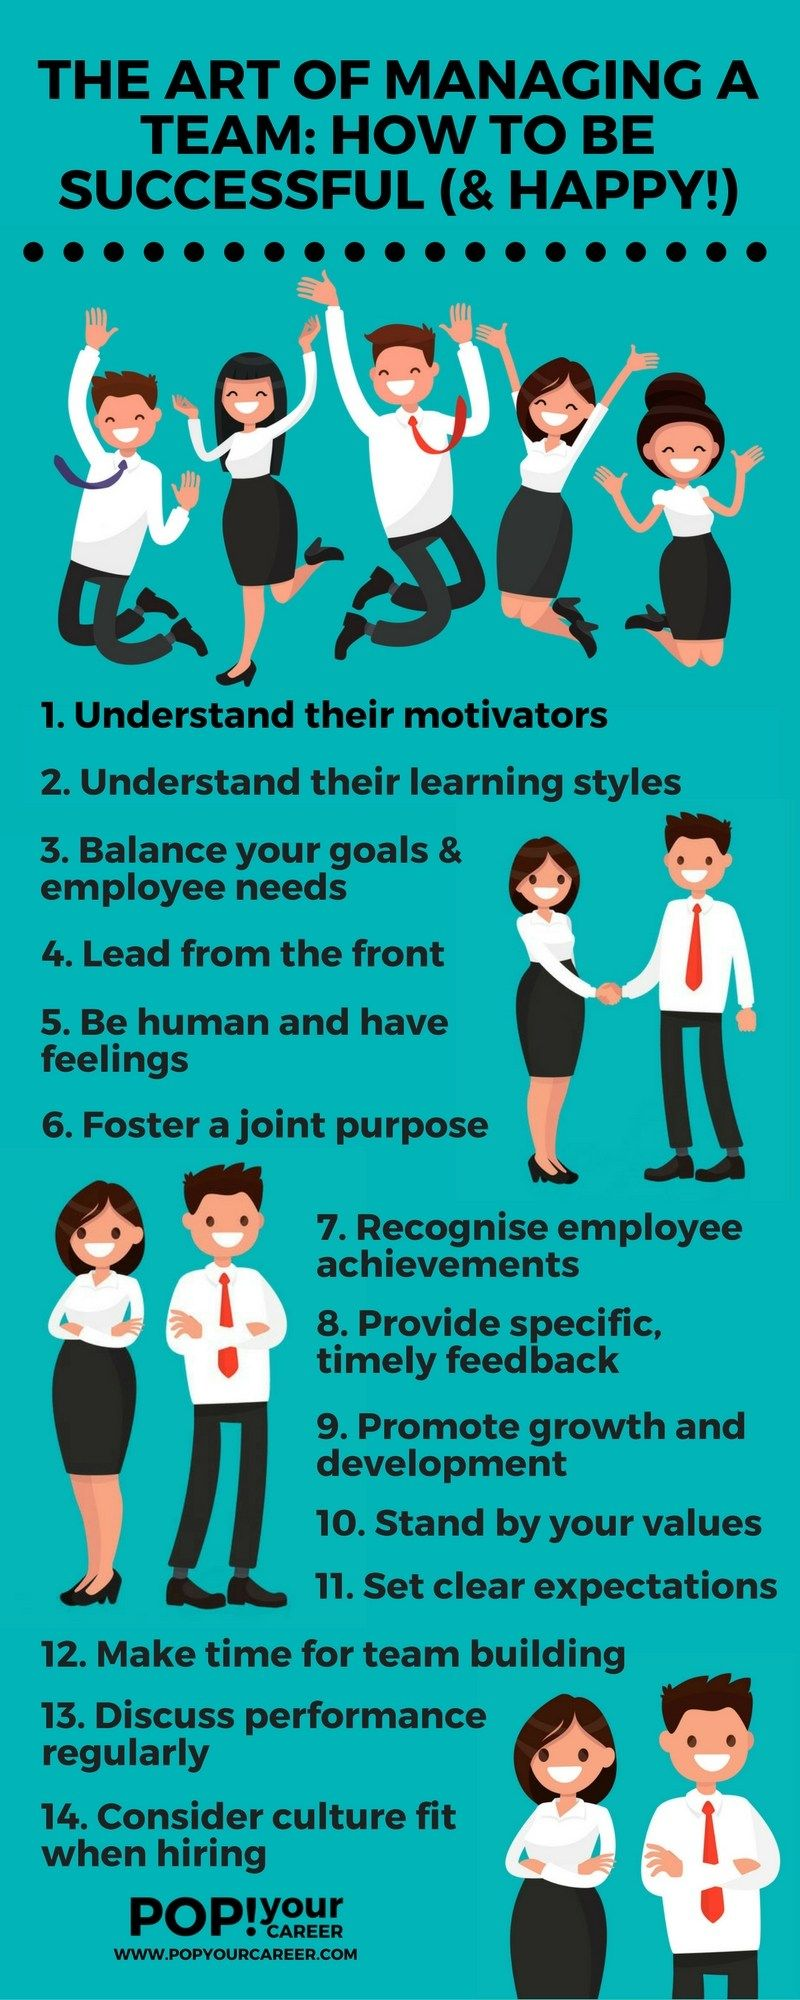 b5da82d73f9 Managing a team is an art form! Follow these tips to ensure you are a  successful (and happy) manager! ~ Pop Your Career